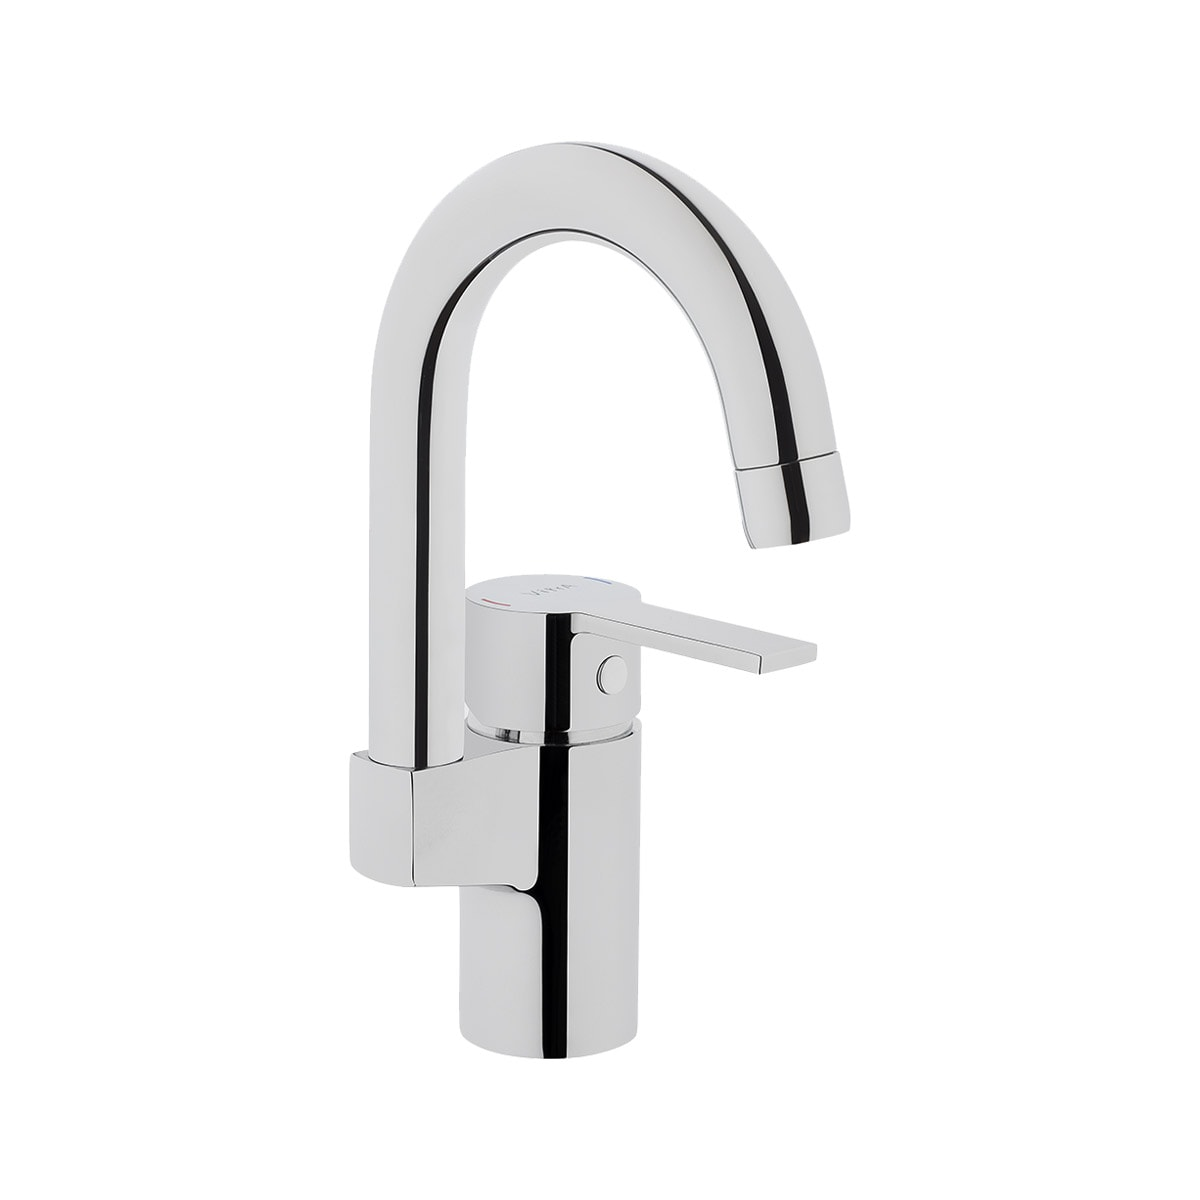 FE1 Basin Mixer (with swivel spout)